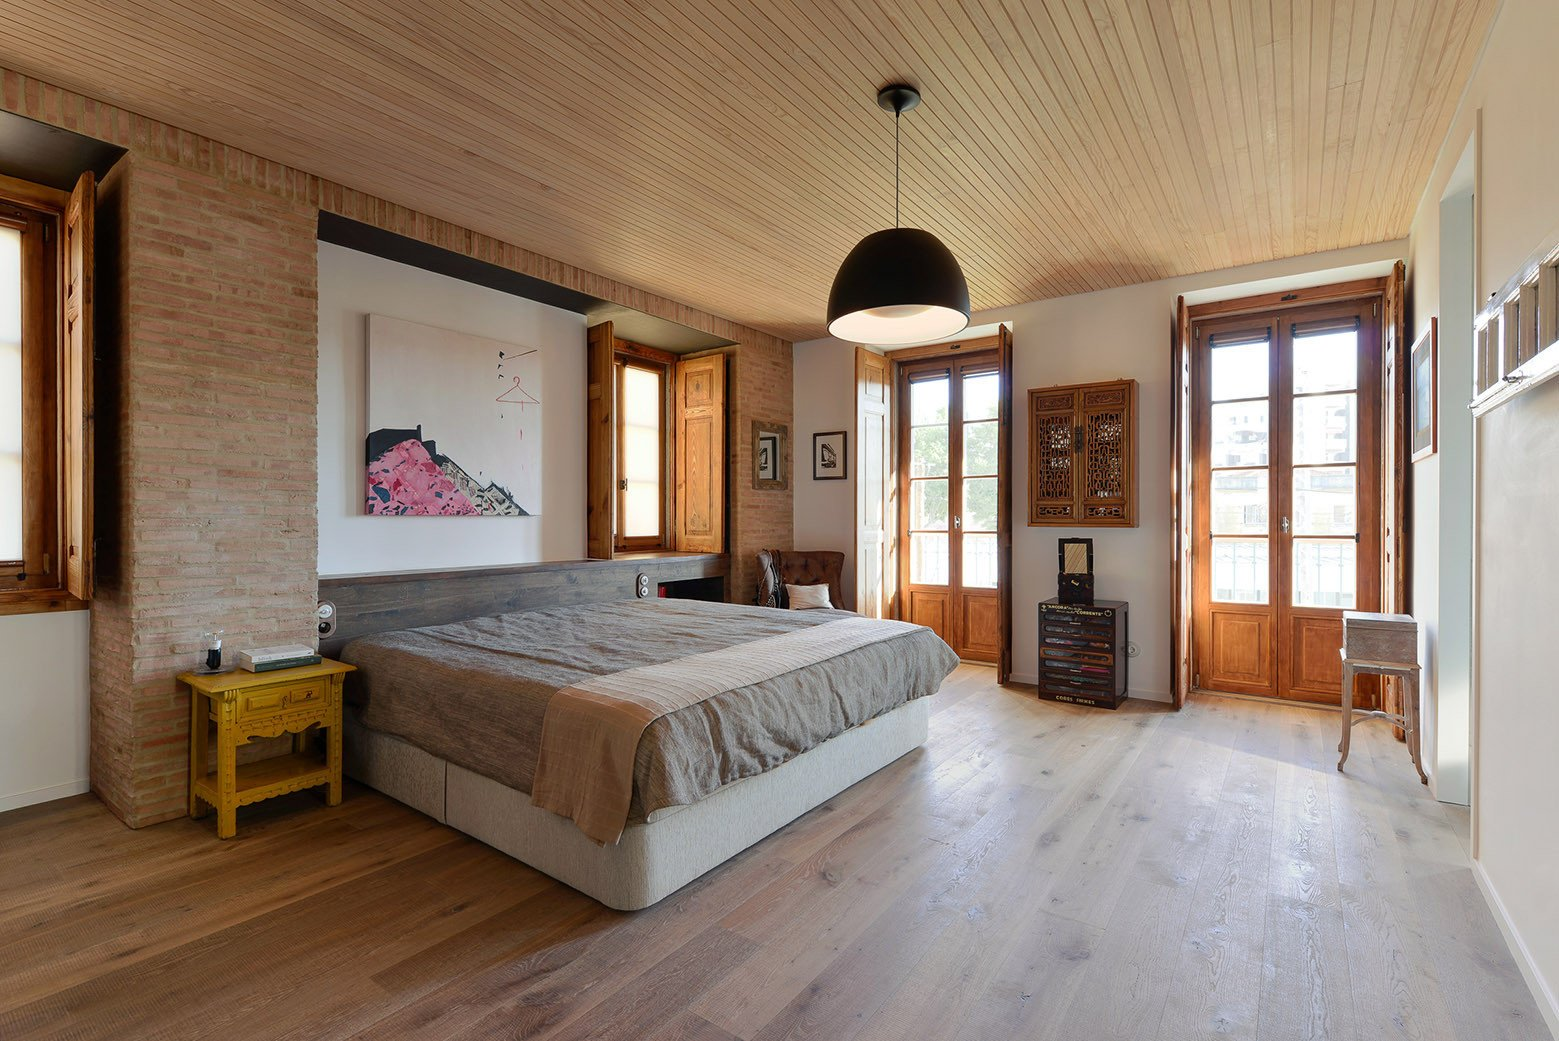 Bedroom, Pendant Lighting, Bed, Chair, Night Stands, and Light Hardwood Floor  Best Photos from An Architect Renovates His 1920s Home in Portugal, While Preserving the Exterior Shell